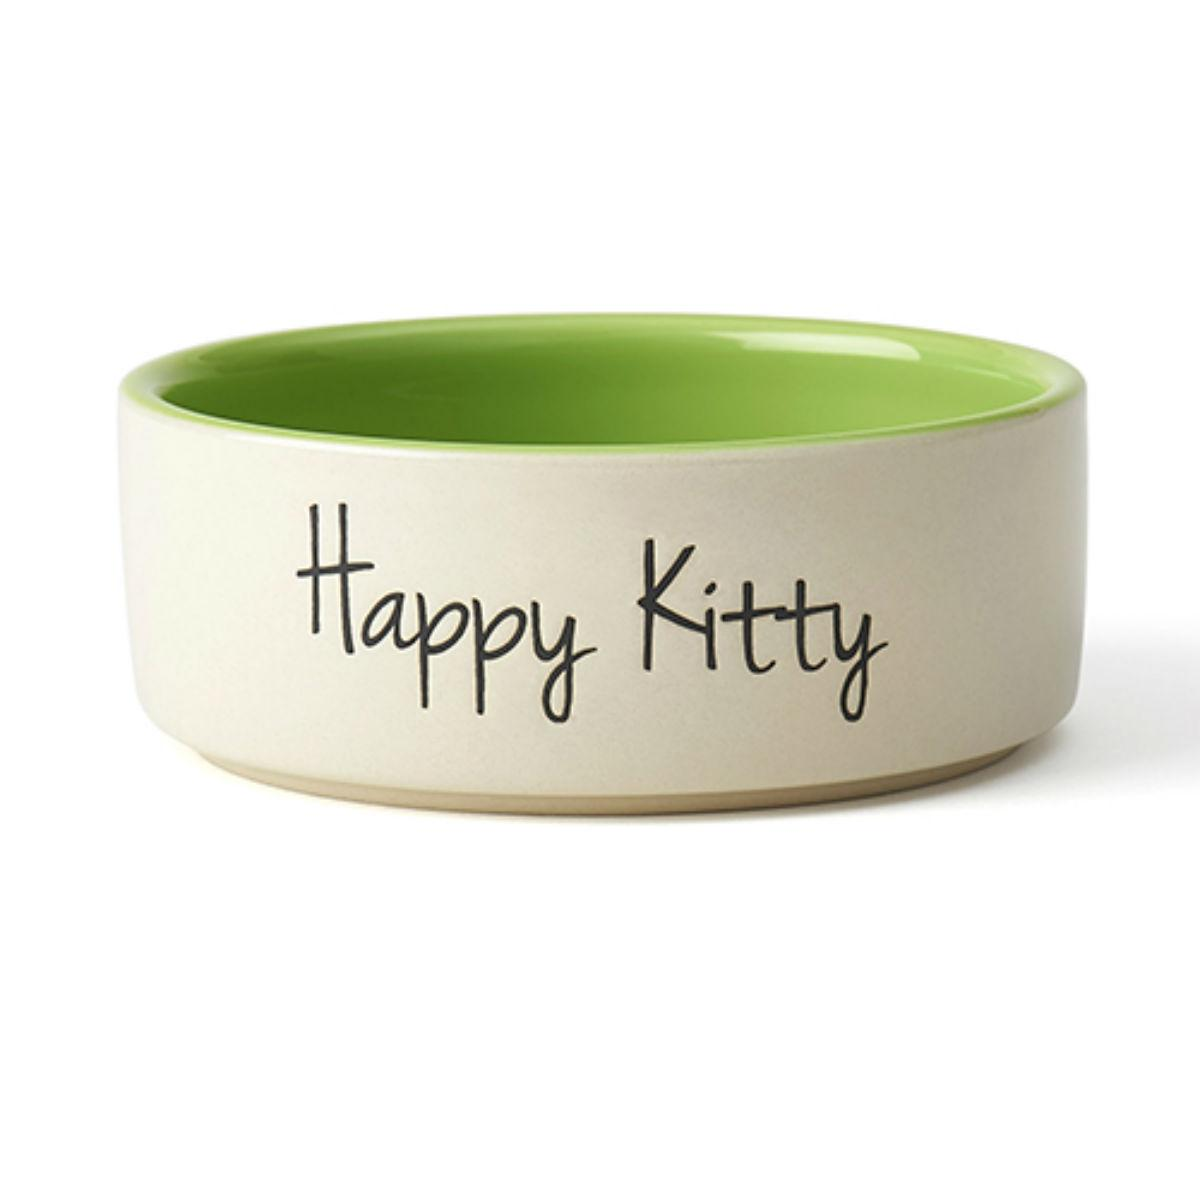 Happy Kitty Cat Bowl - Lime Green